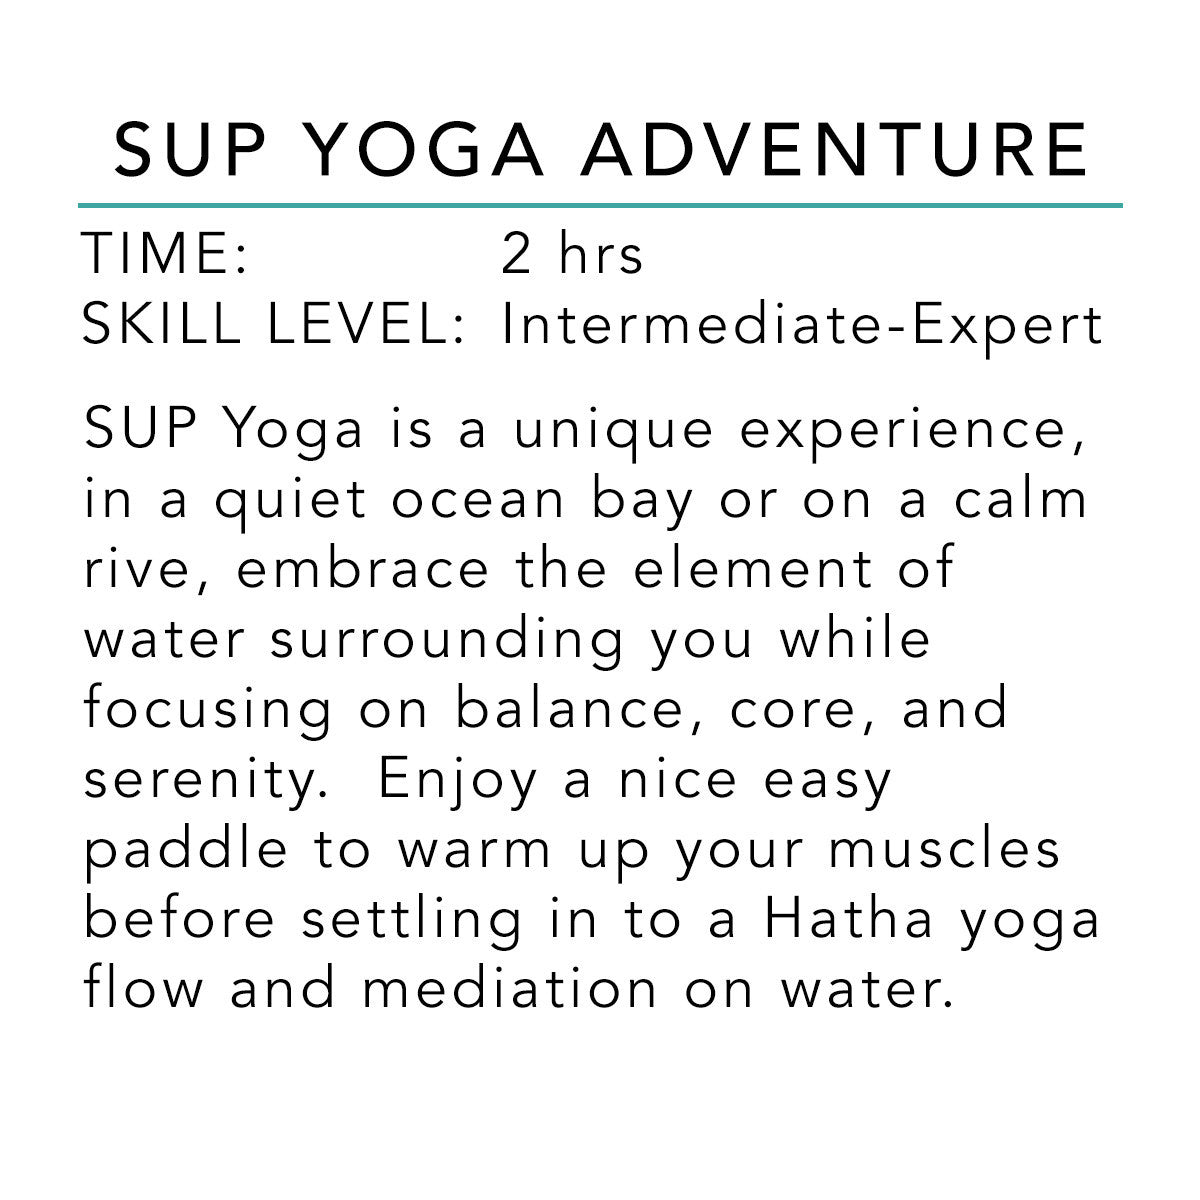 SUP Yoga Adventure